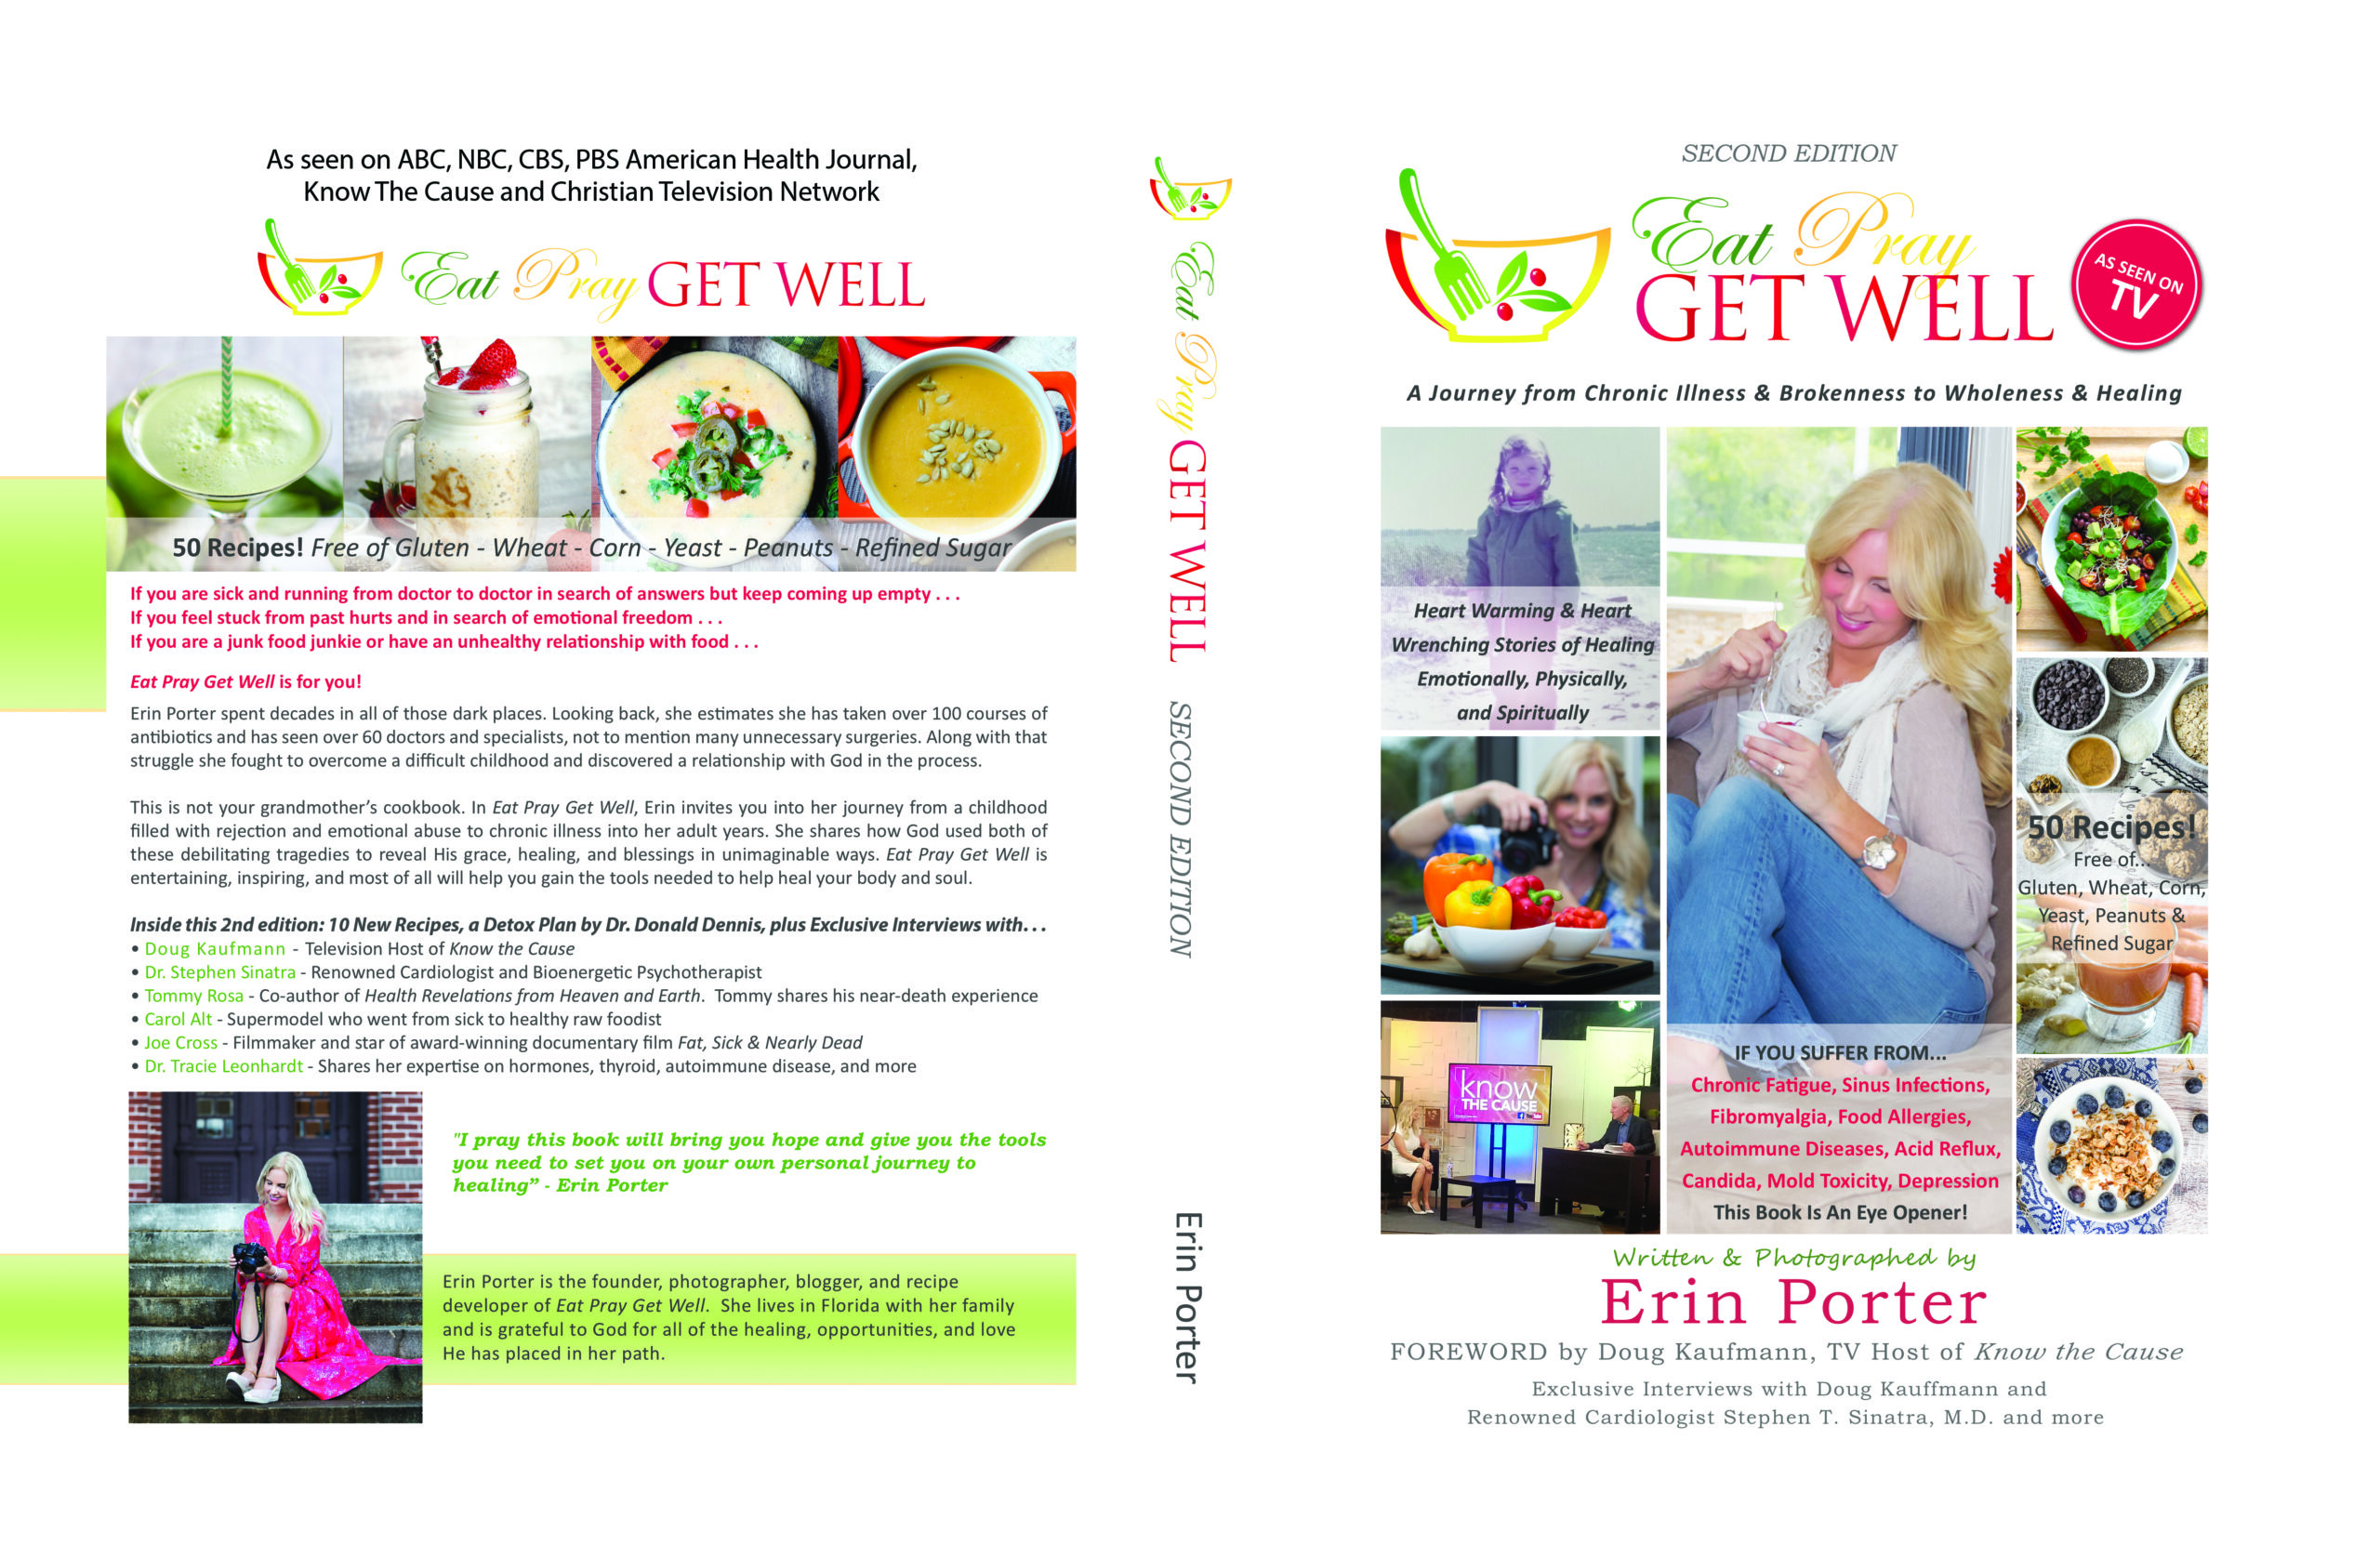 Eat Pray Get Well - Second Edition Book Cover